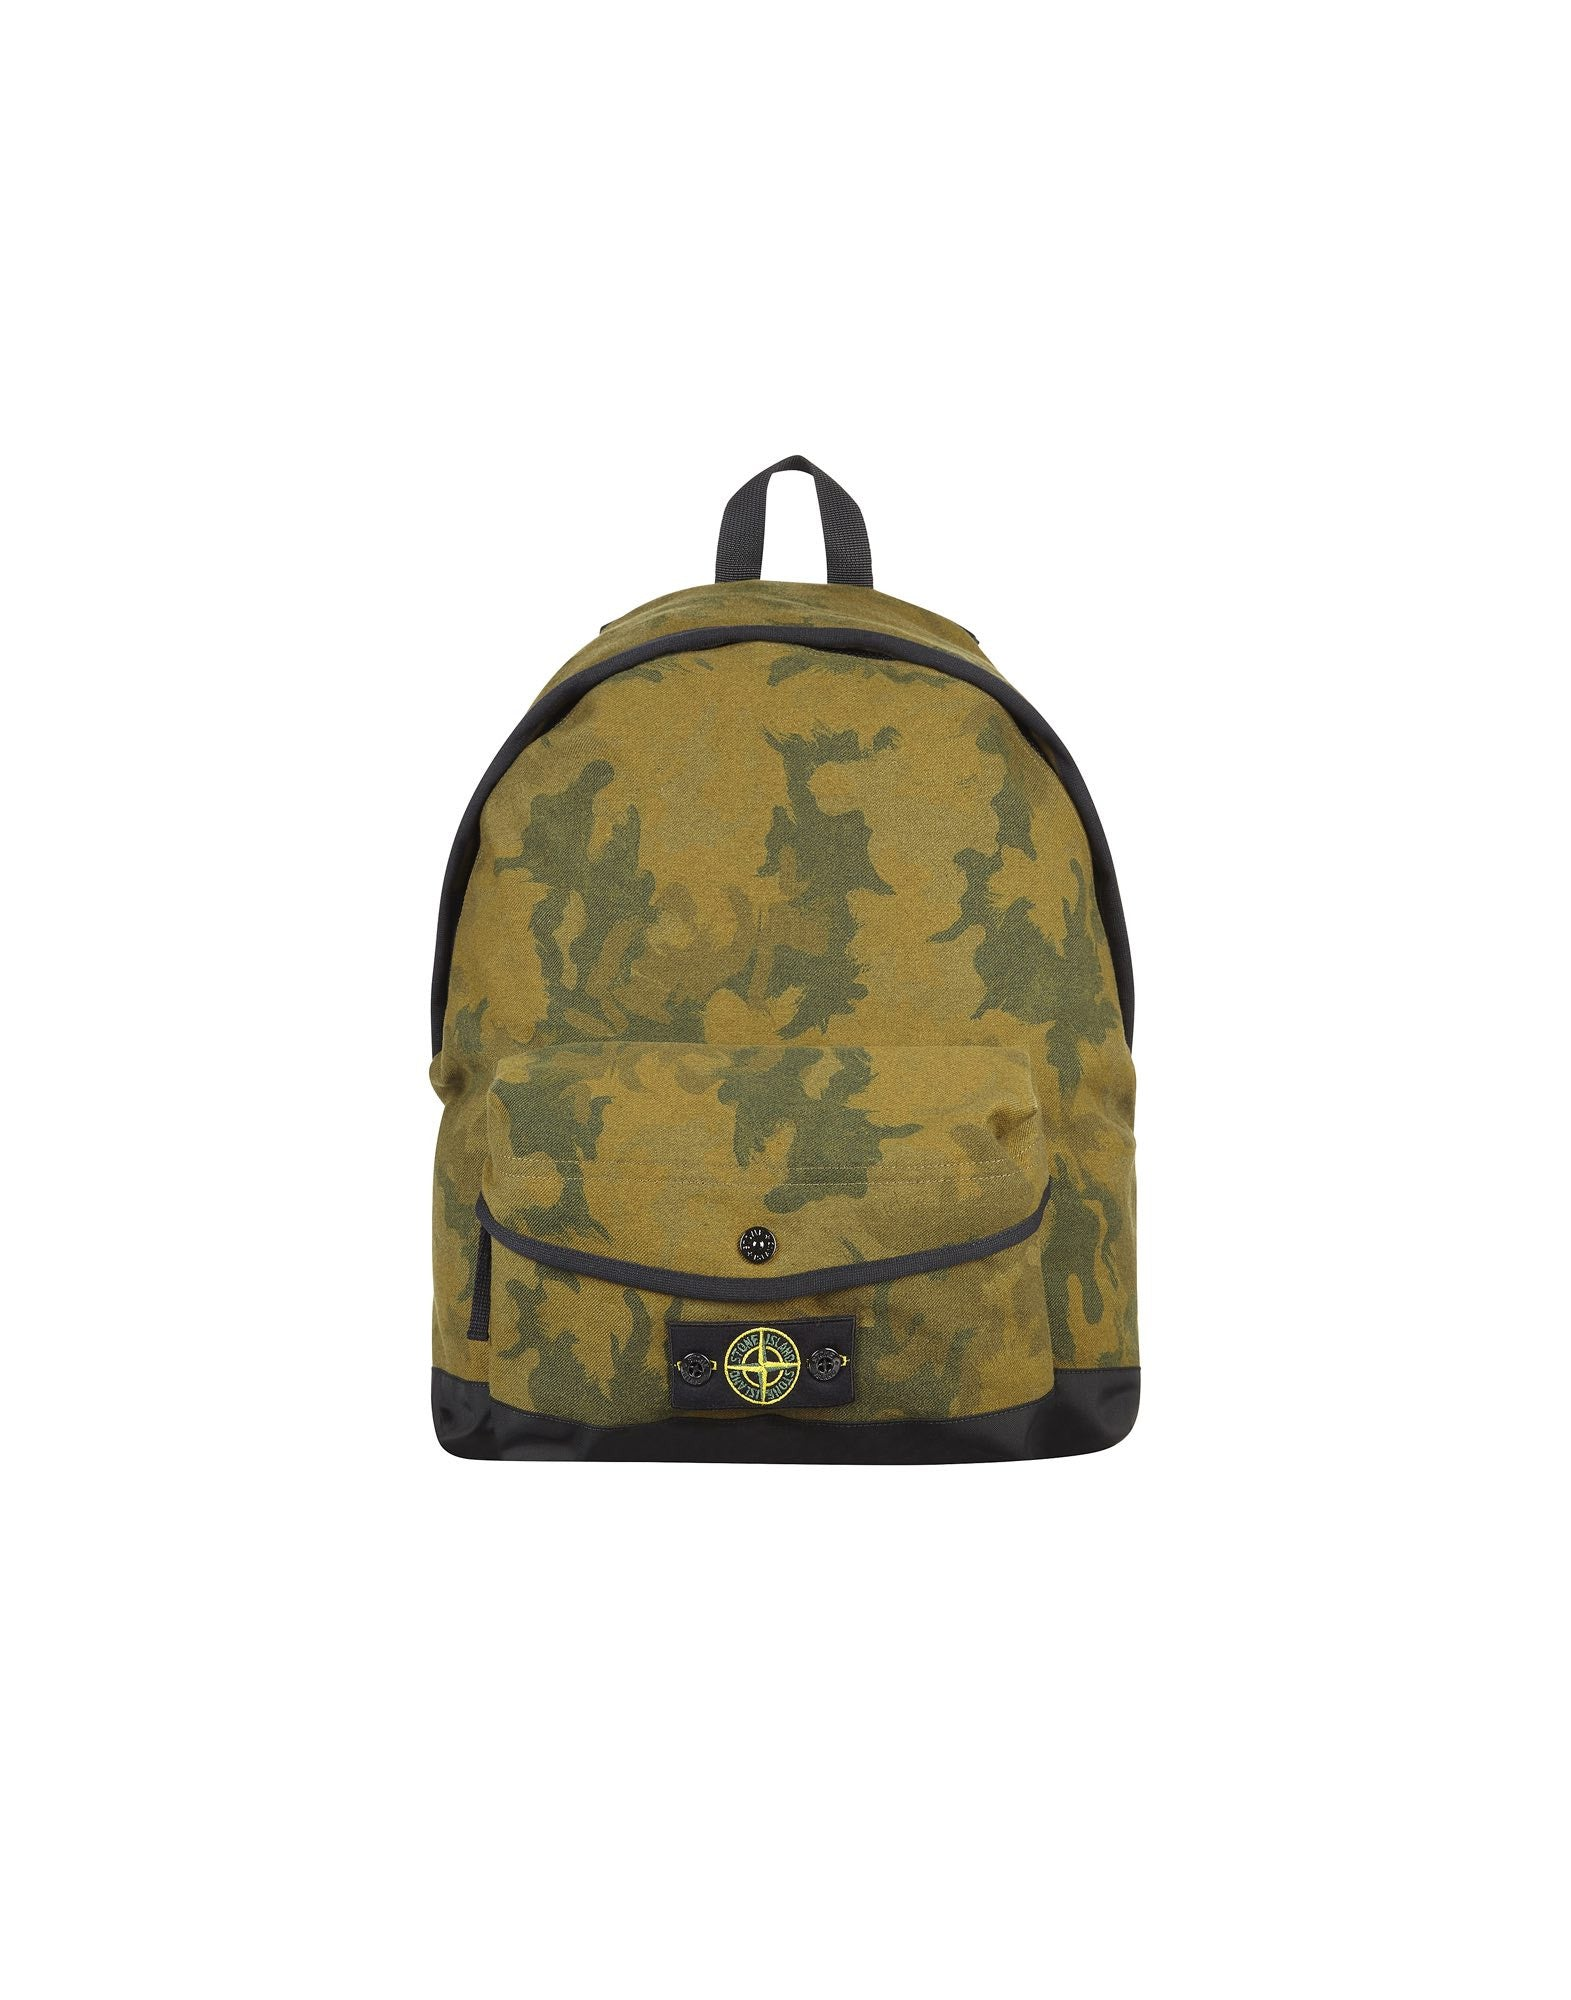 91661 Camouflage Water Resistant Backpack in Green